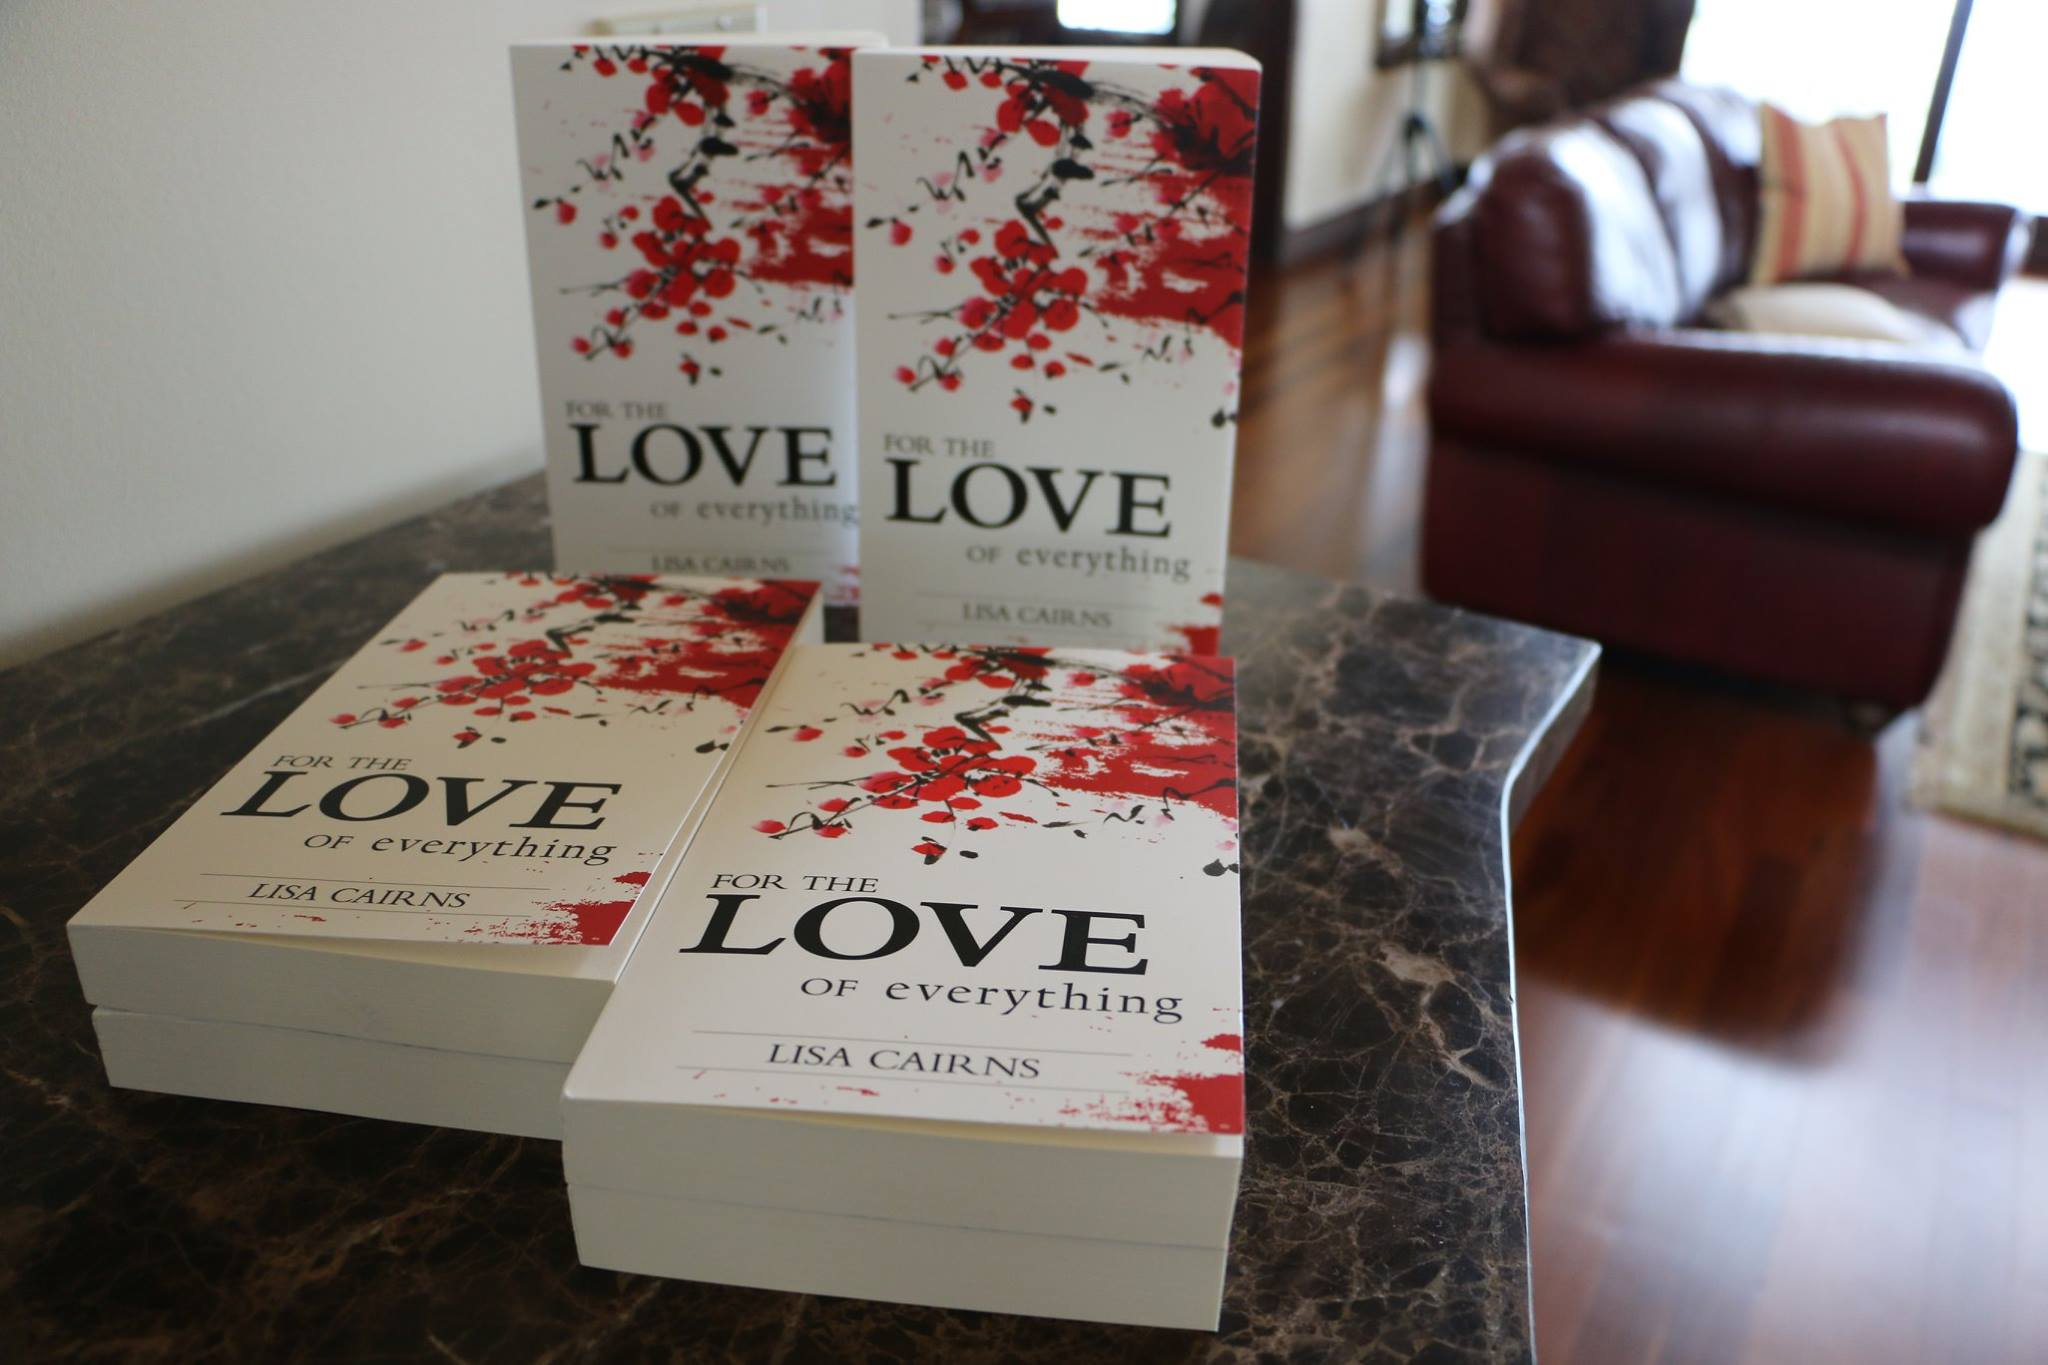 Lisa Cairns' New Book – FOR THE LOVE OF everything